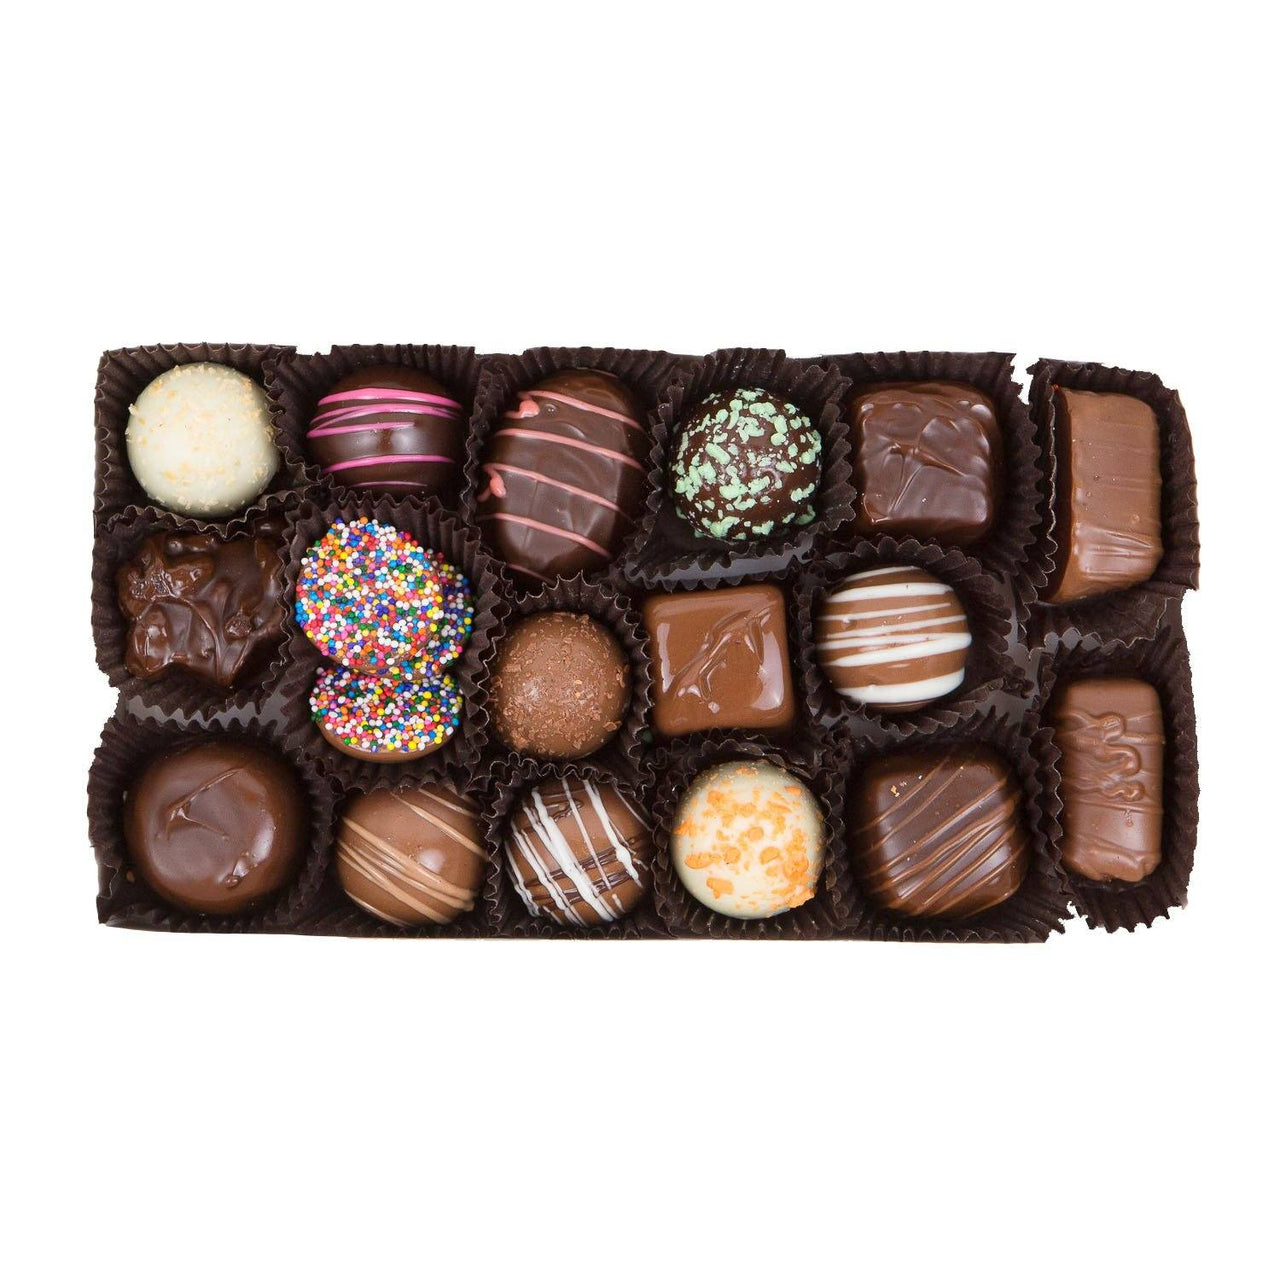 Gift Ideas for Son in Law - Assorted Chocolate Gift Box - Jackie's Chocolate (1487130034211)